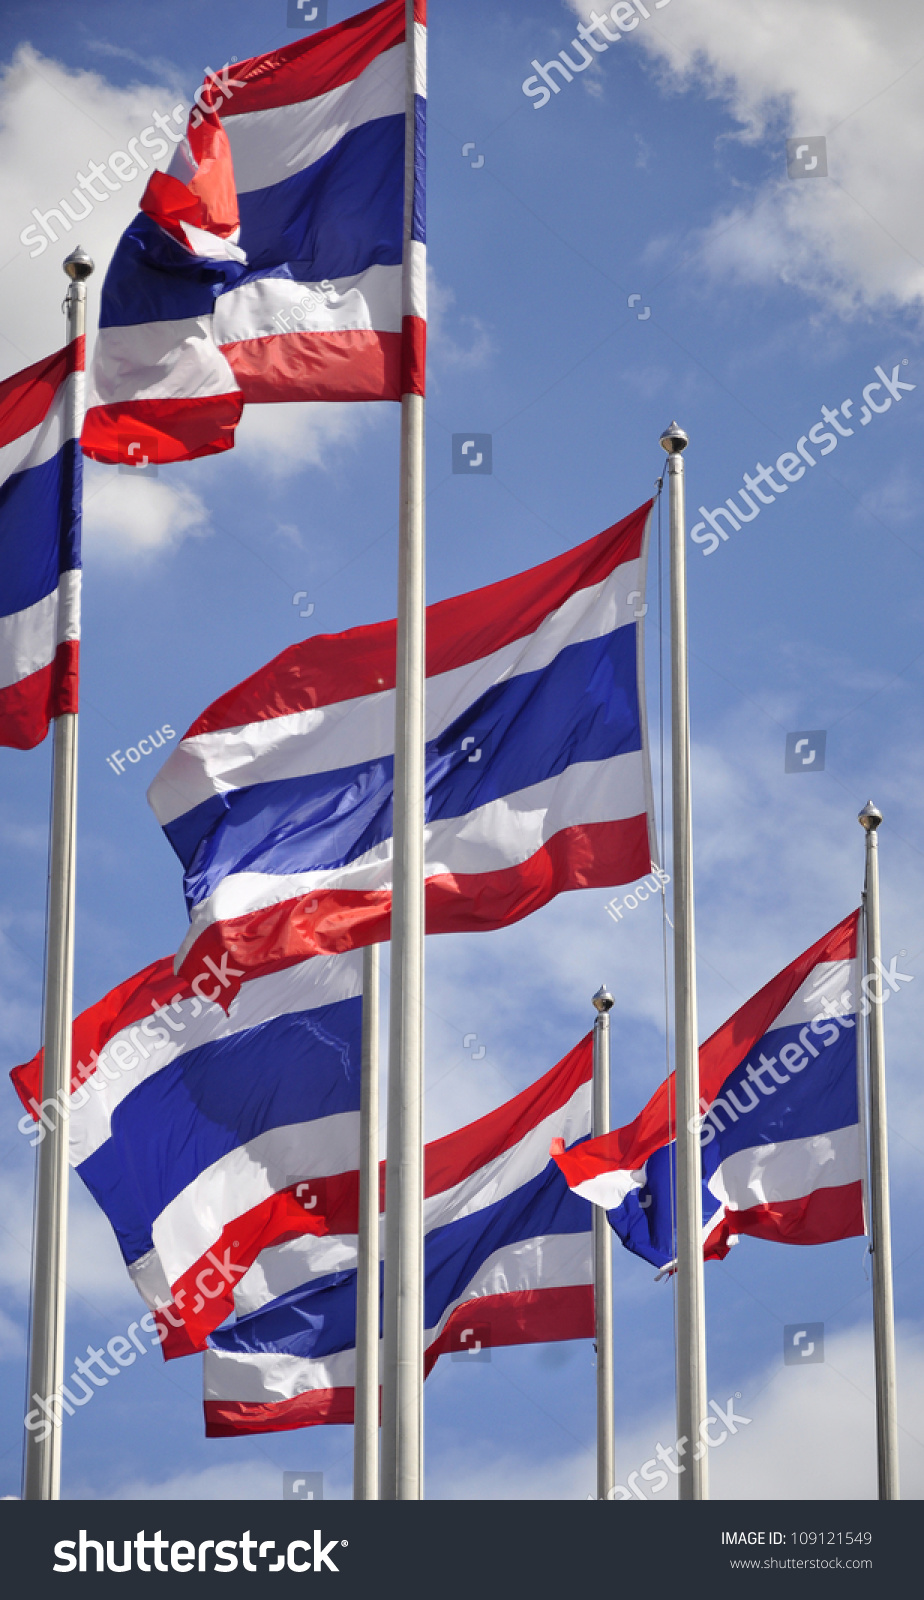 Thai flags waving on a sunny day under a blue sky with some clouds